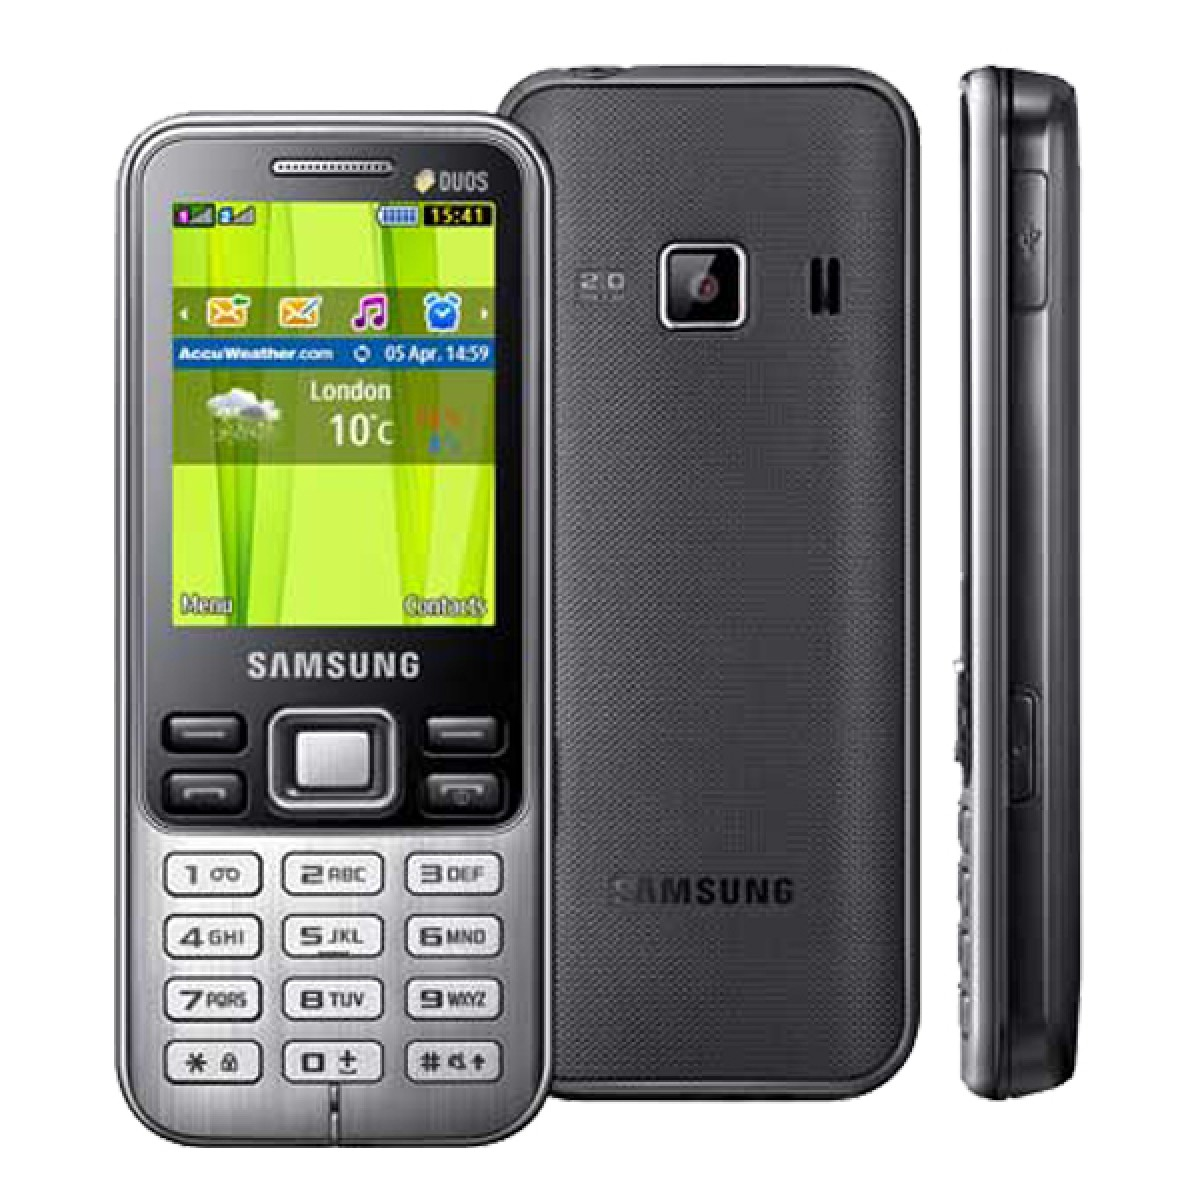 samsung metro duos c3322 latest mobile phone. Black Bedroom Furniture Sets. Home Design Ideas